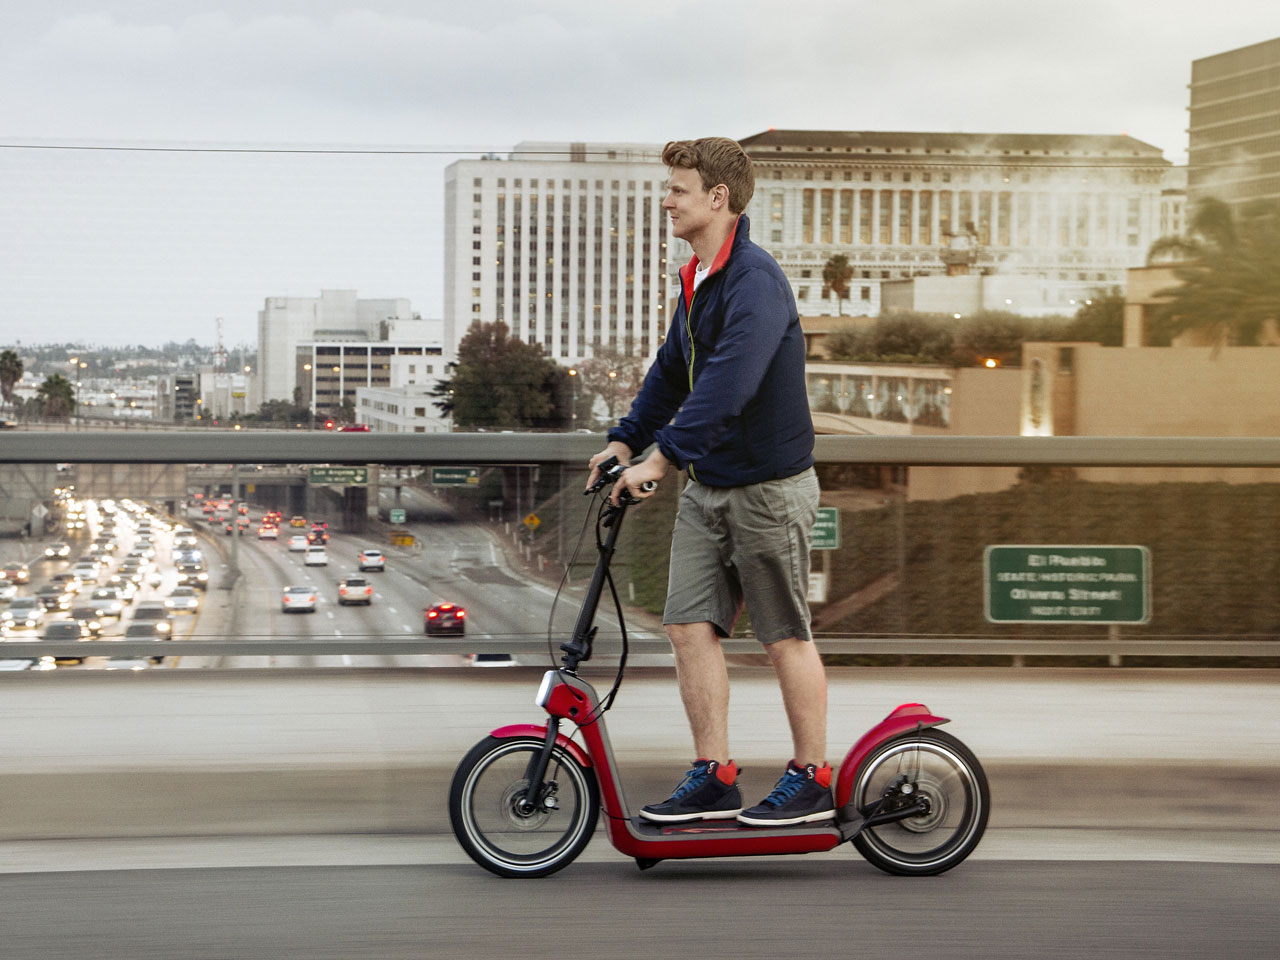 The Mini Citysurfer Electric Scooter Concept drive